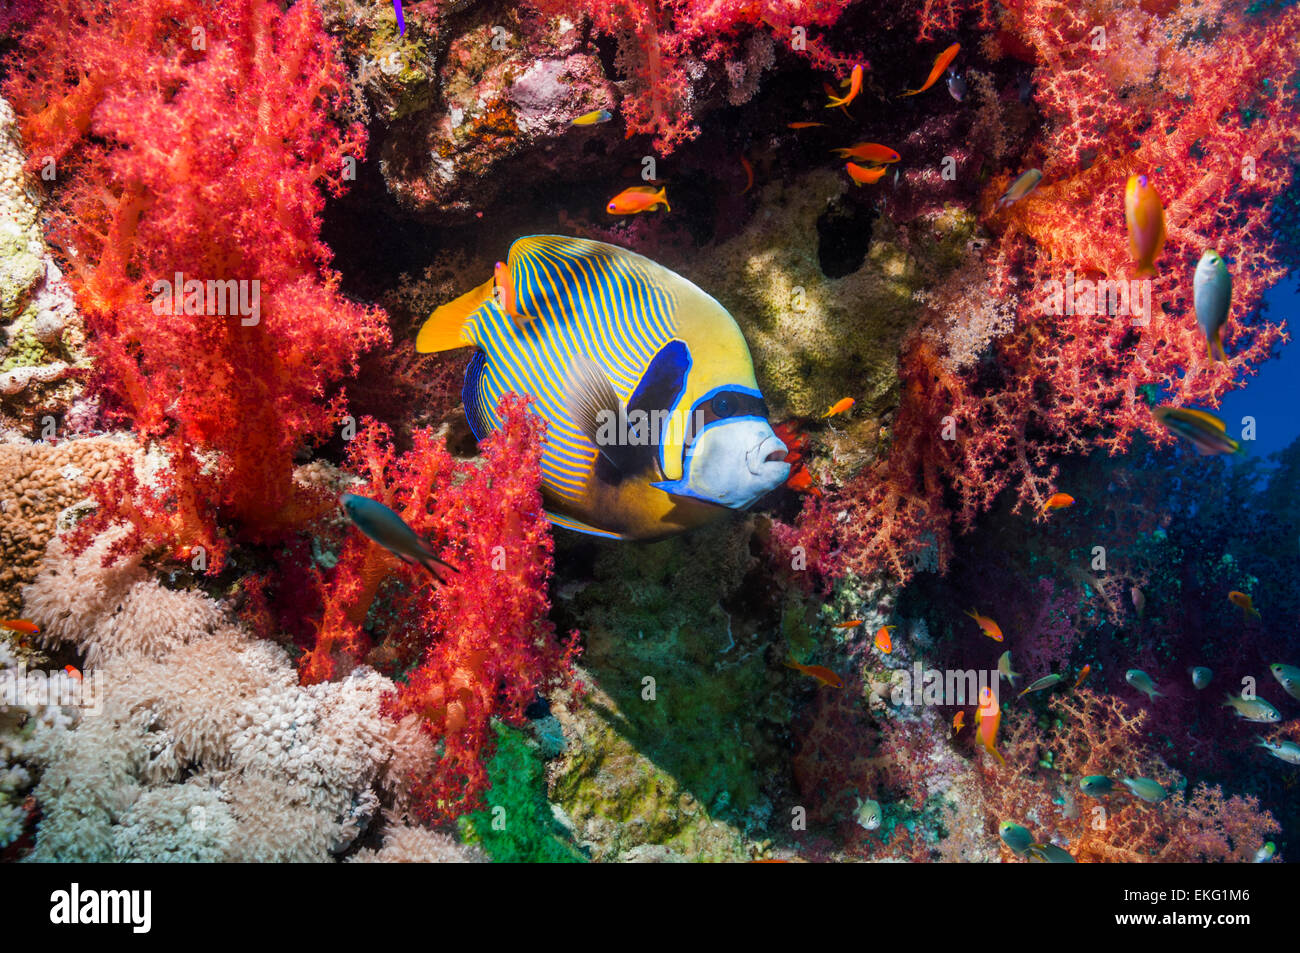 Emperor angelfish at a cleaning station amongst soft corals, where small cleaner shrimps operate.  Egypt Red Sea - Stock Image